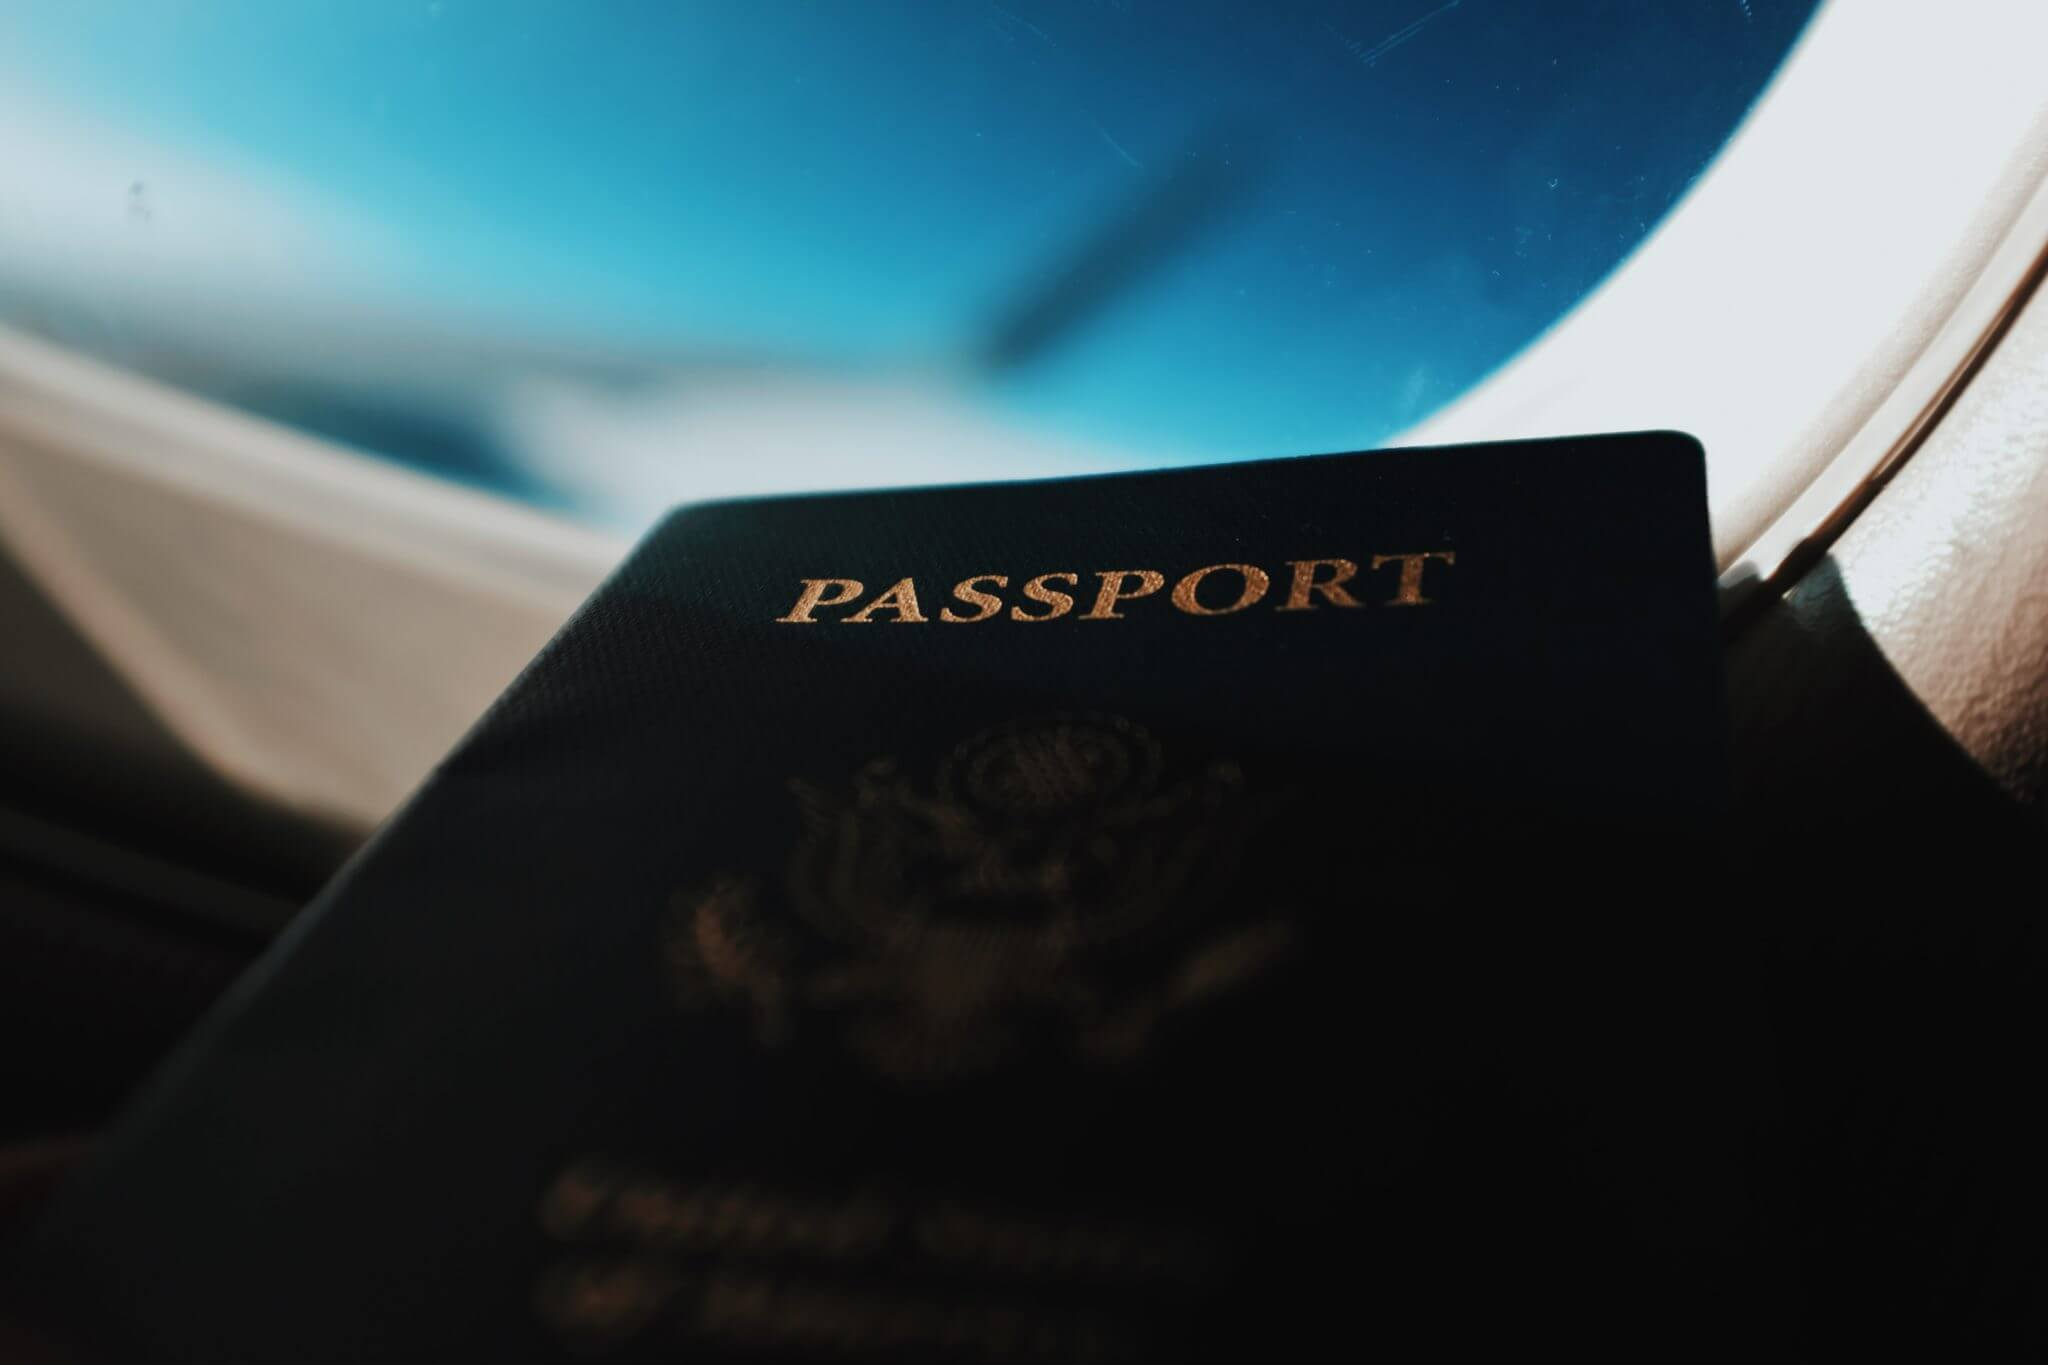 Passport 2 Photo by Blake Guidry on Unsplash